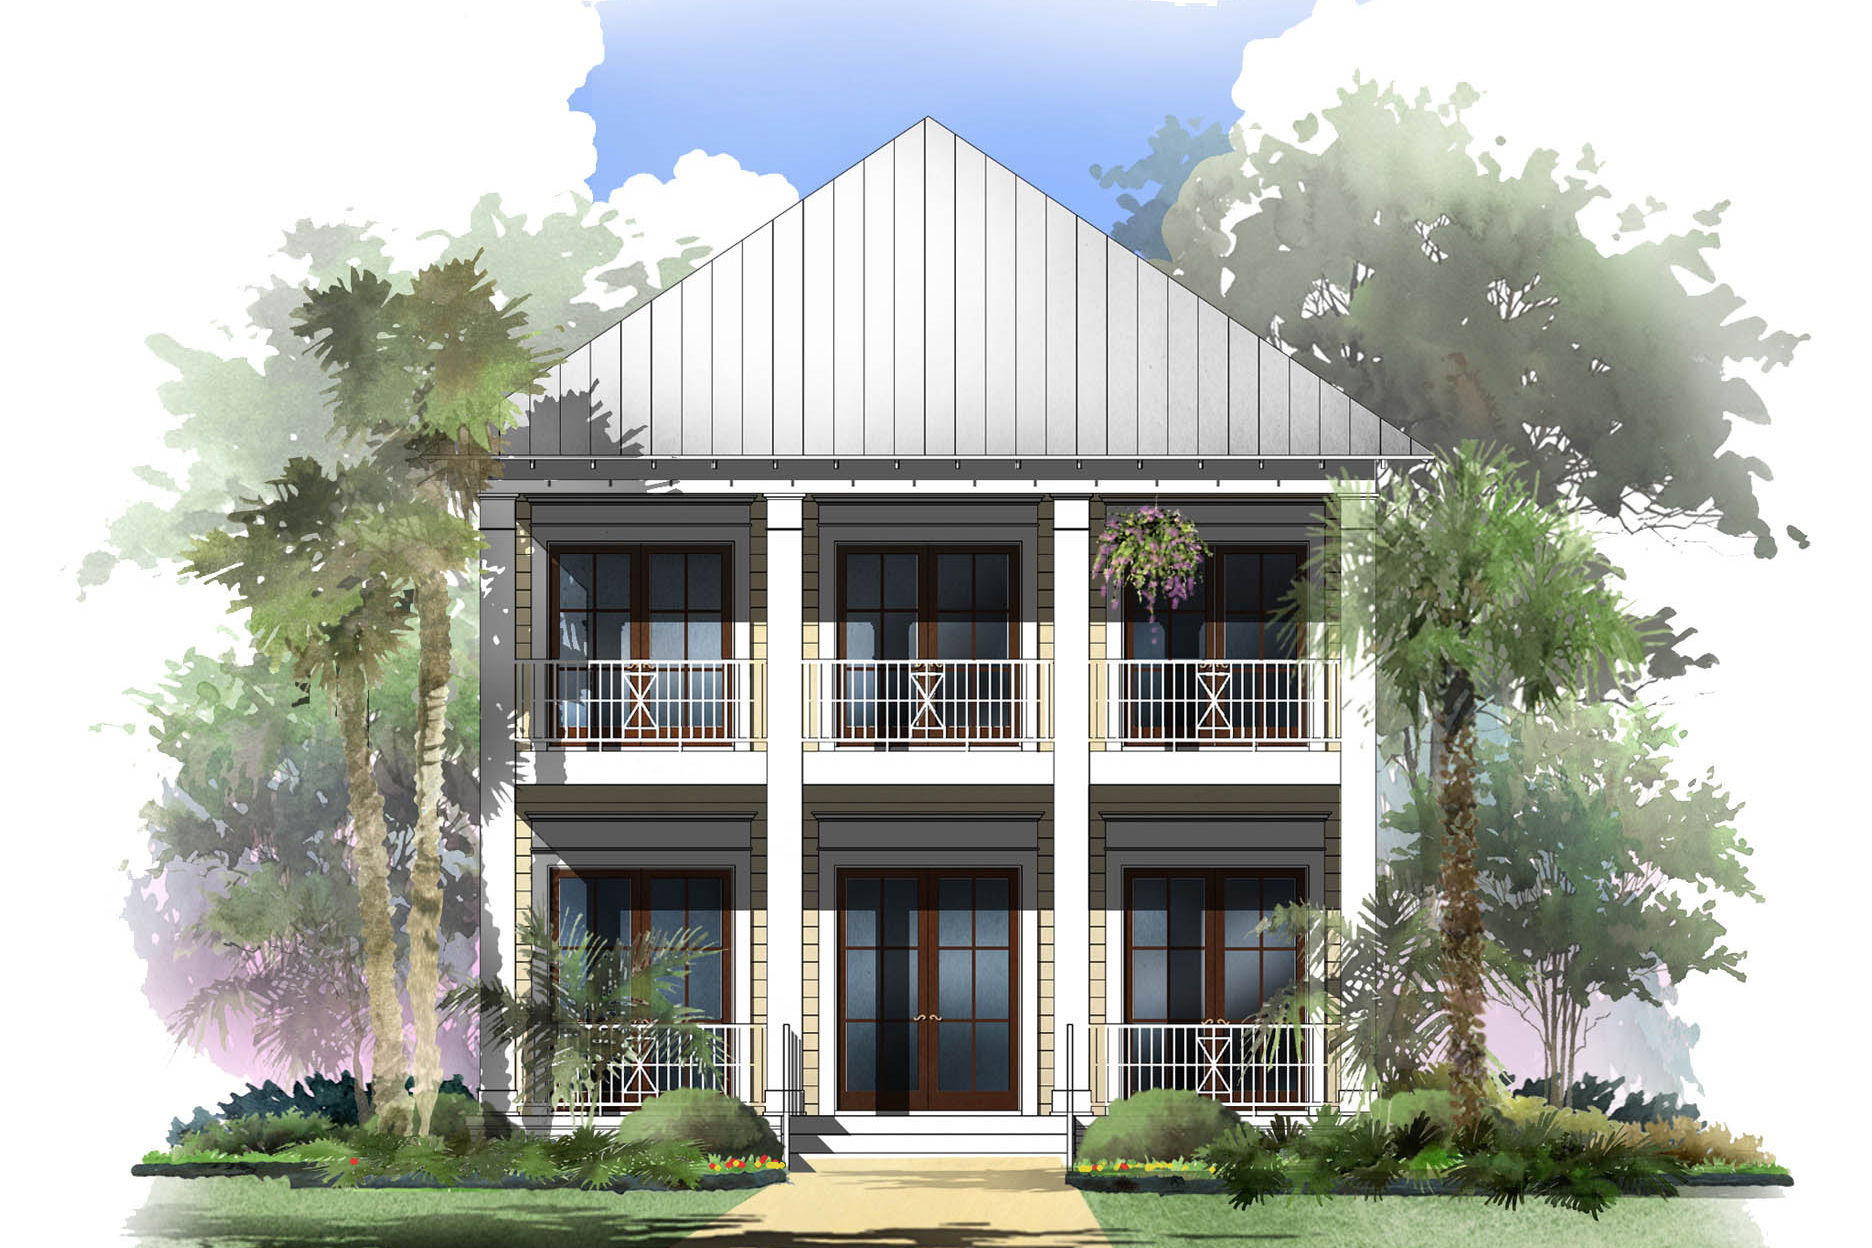 Coastal house plan 142 1125 4 bedrm 2888 sq ft home for Seaside house plans